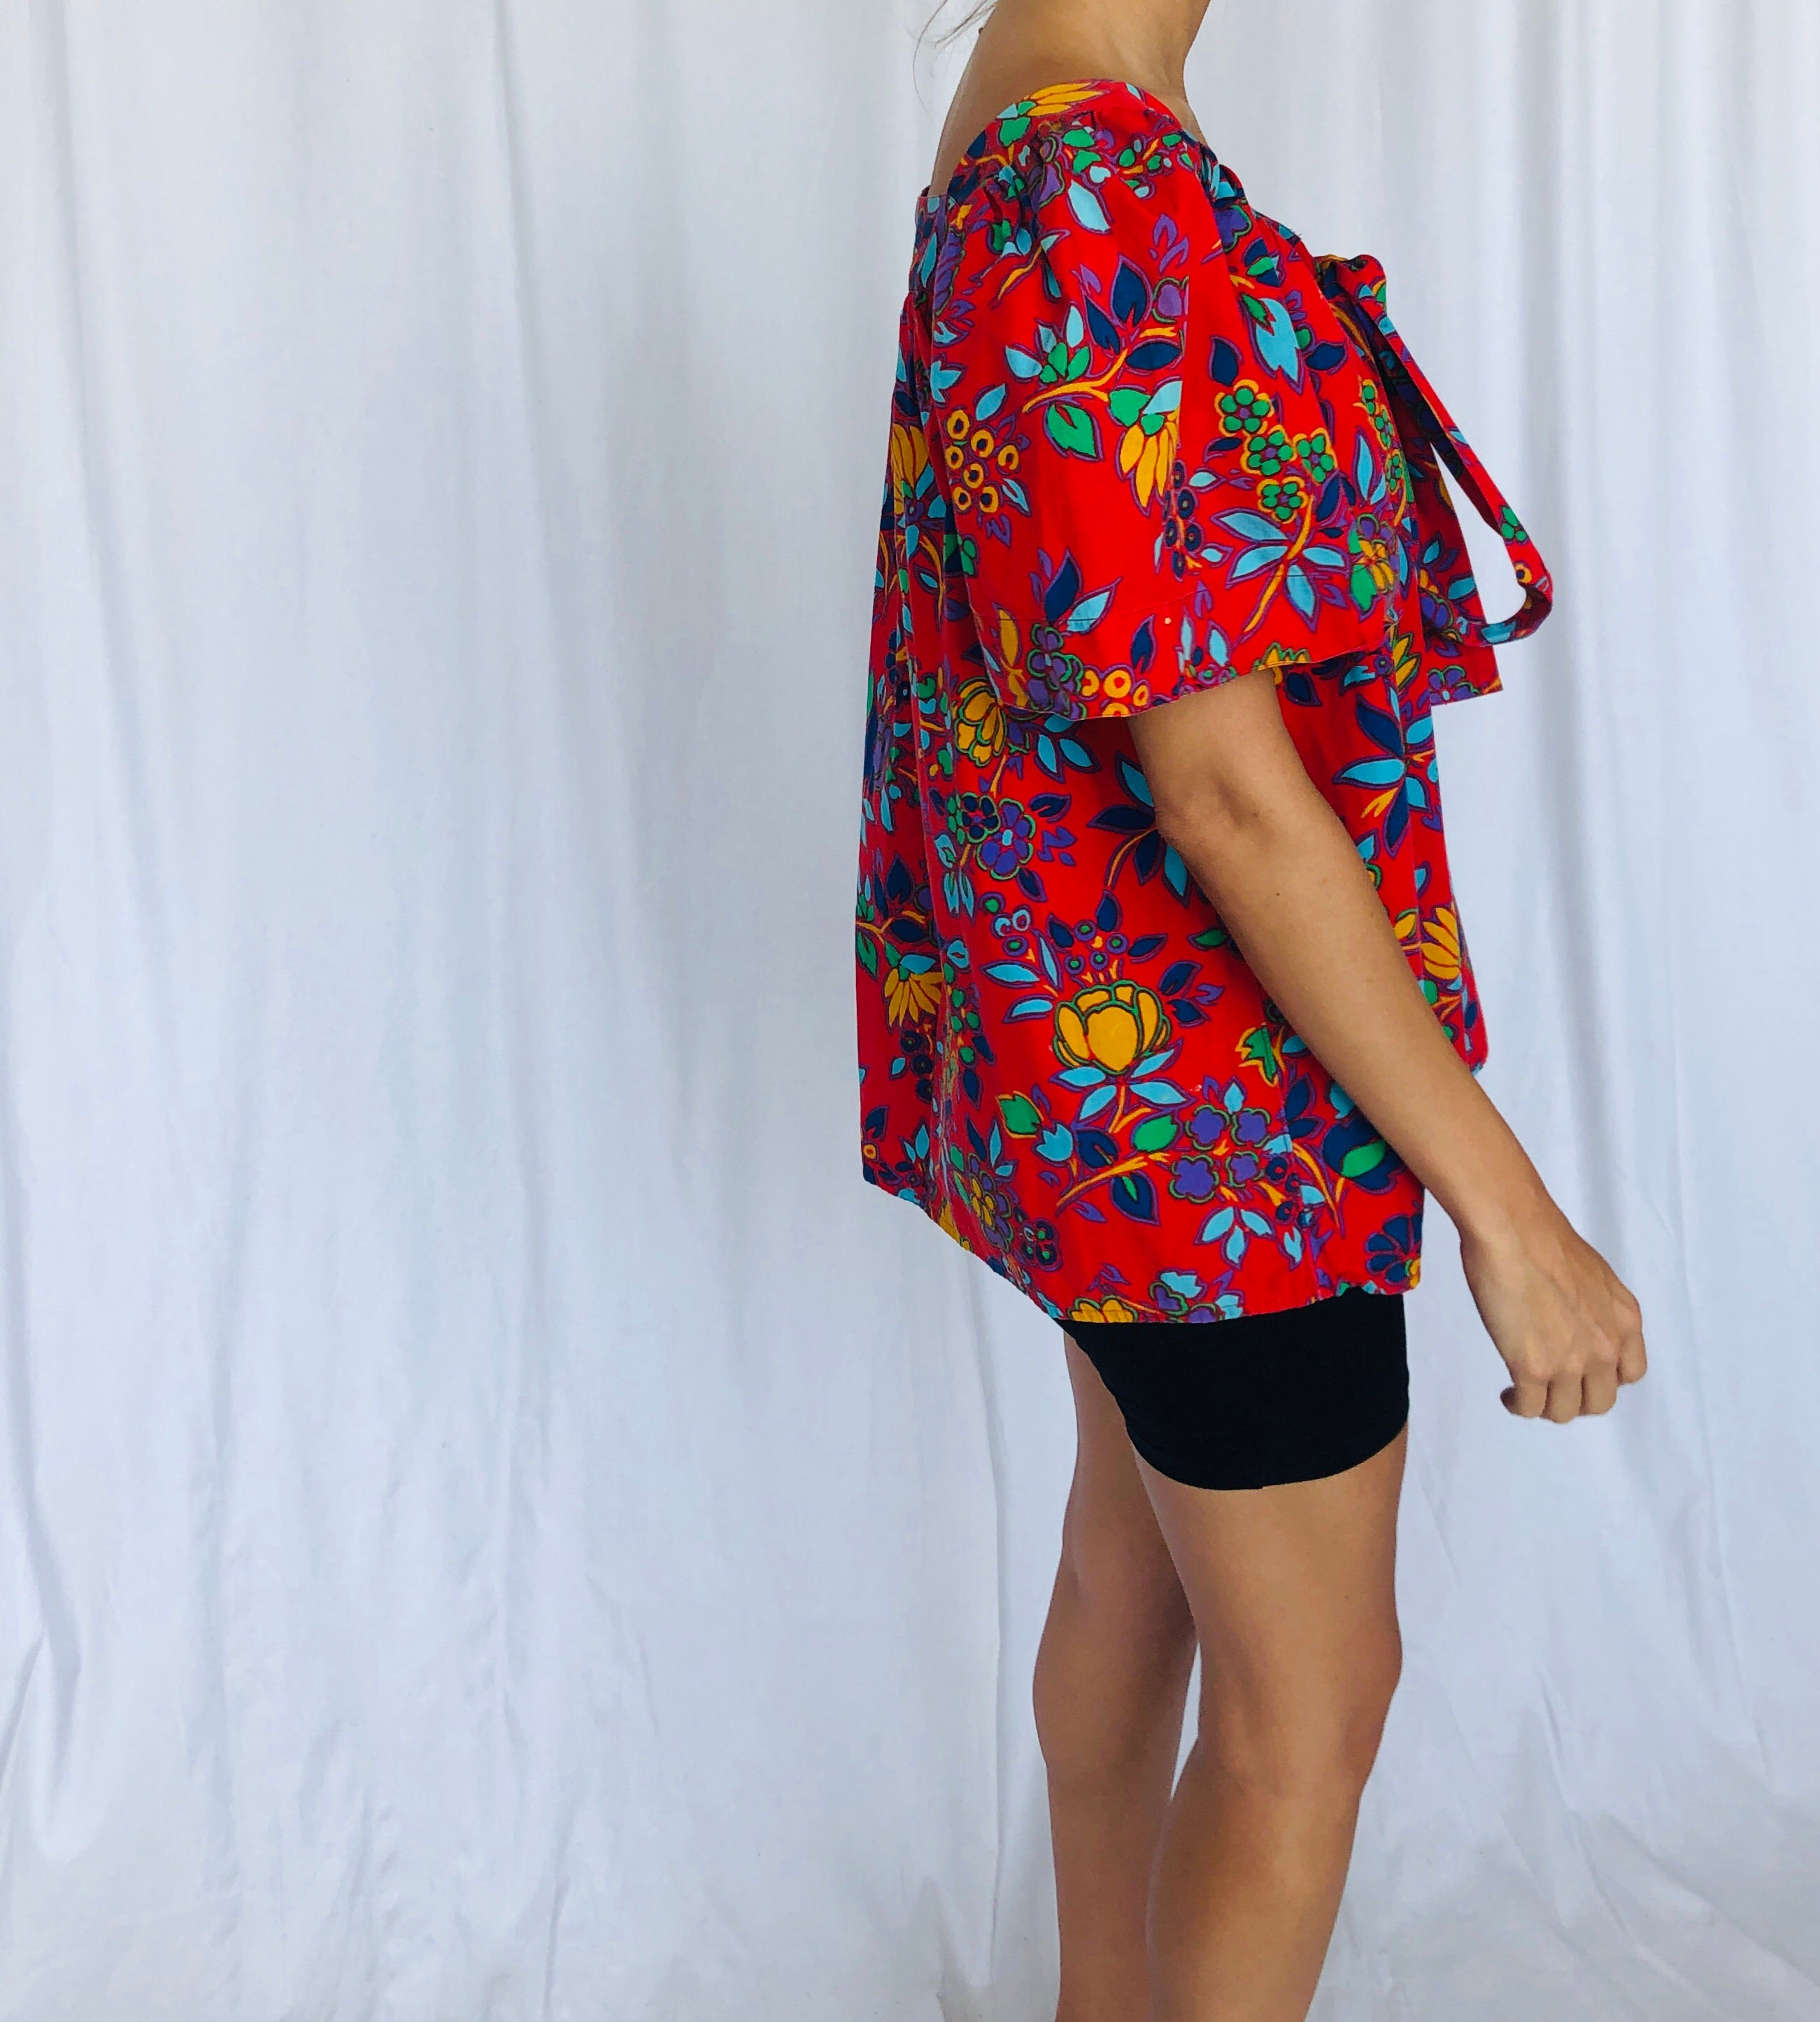 YSL 70s Vintage Saint Laurent Peasant Blouse Red Blue Cotton Floral 38 or S